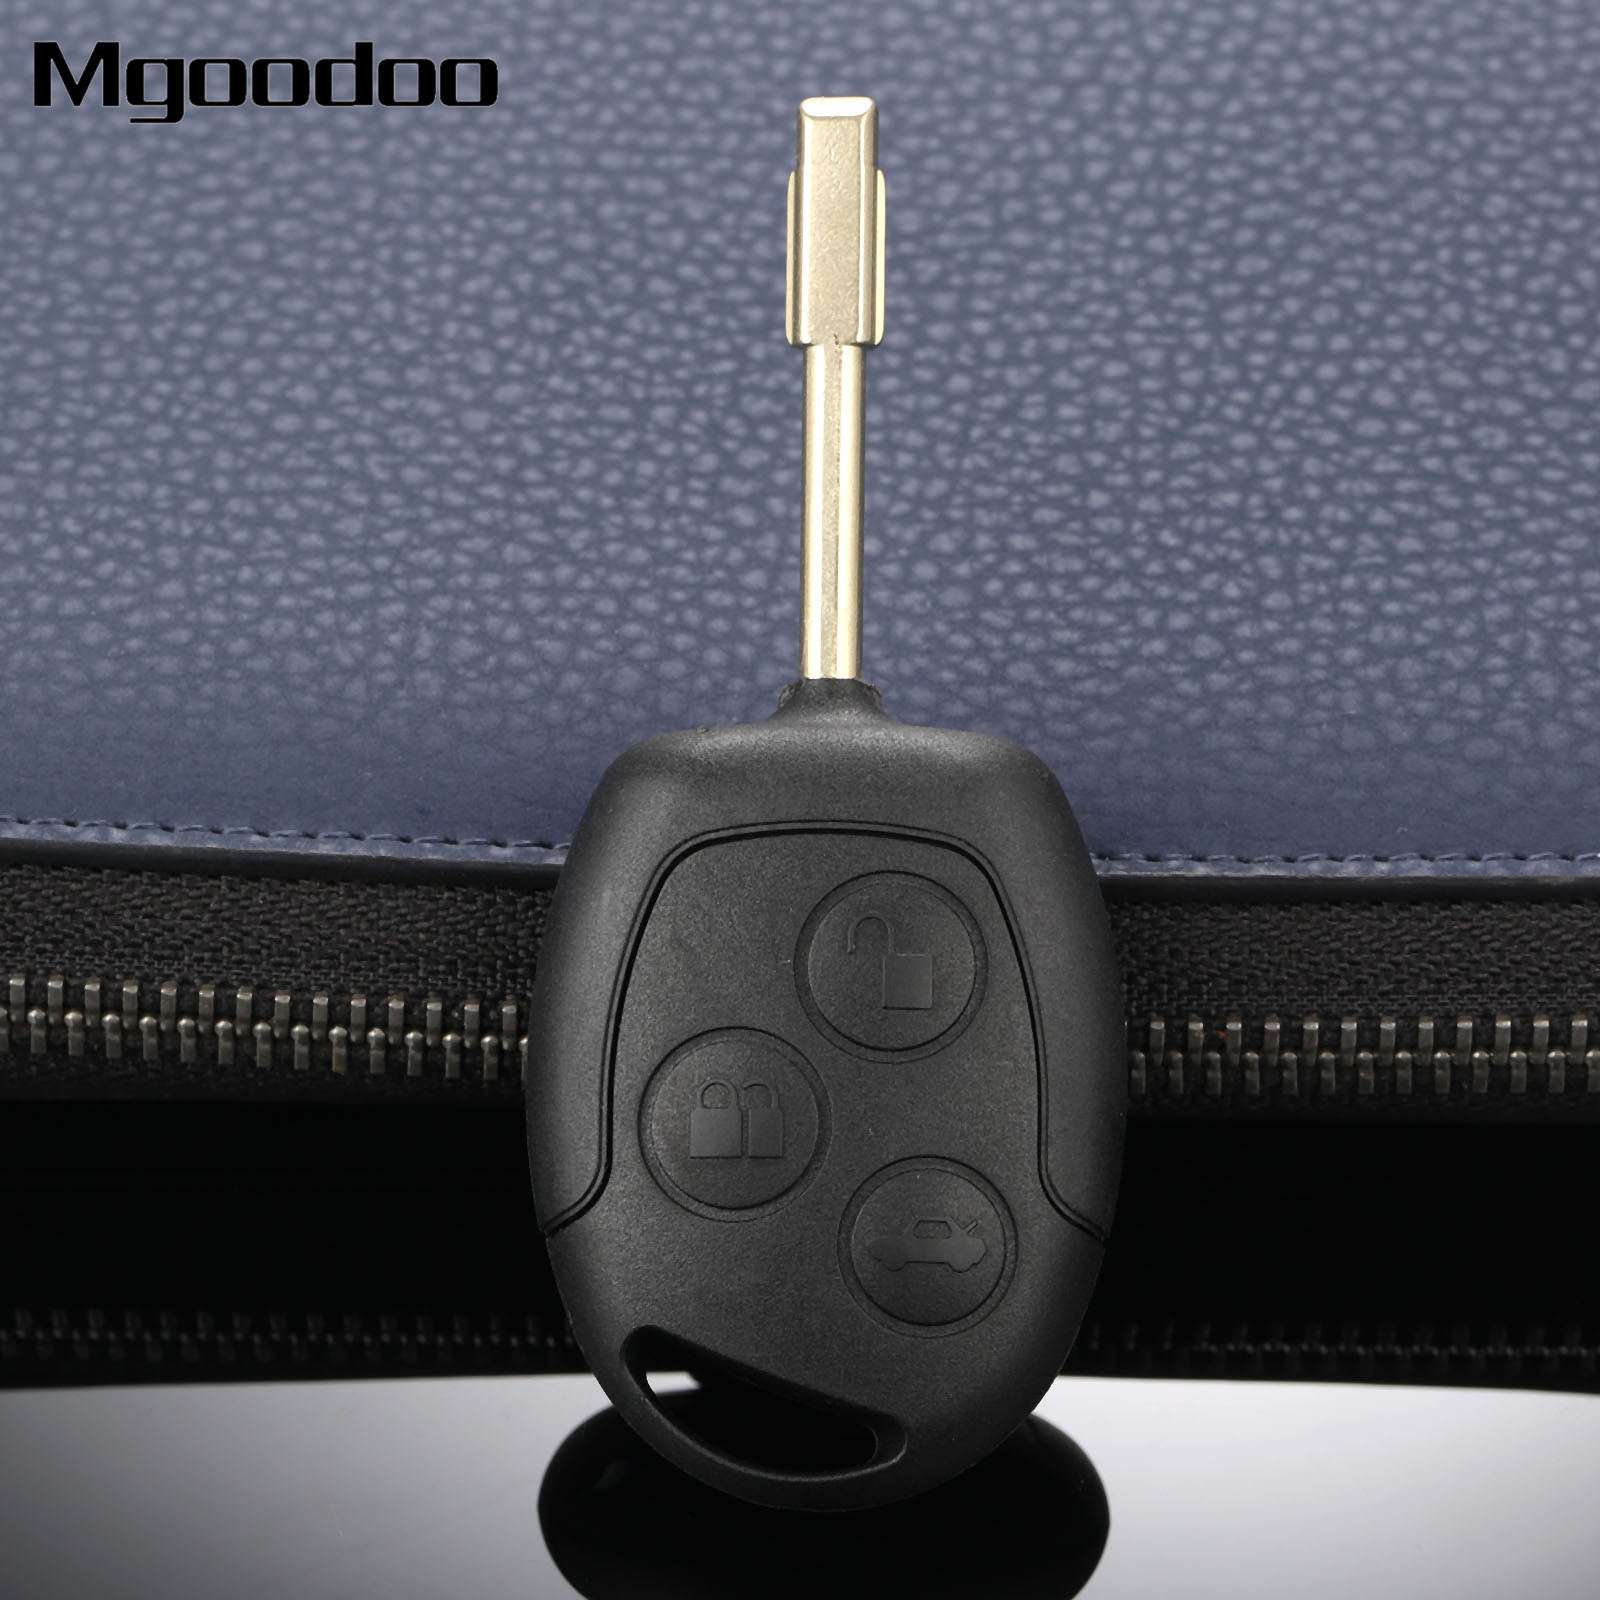 New 3 Buttons Remote Key Shell Case 433MHz ID60 Chip For Ford Fiesta Focus Mondeo KA Auto Replacement Keyless Remote Transmitter